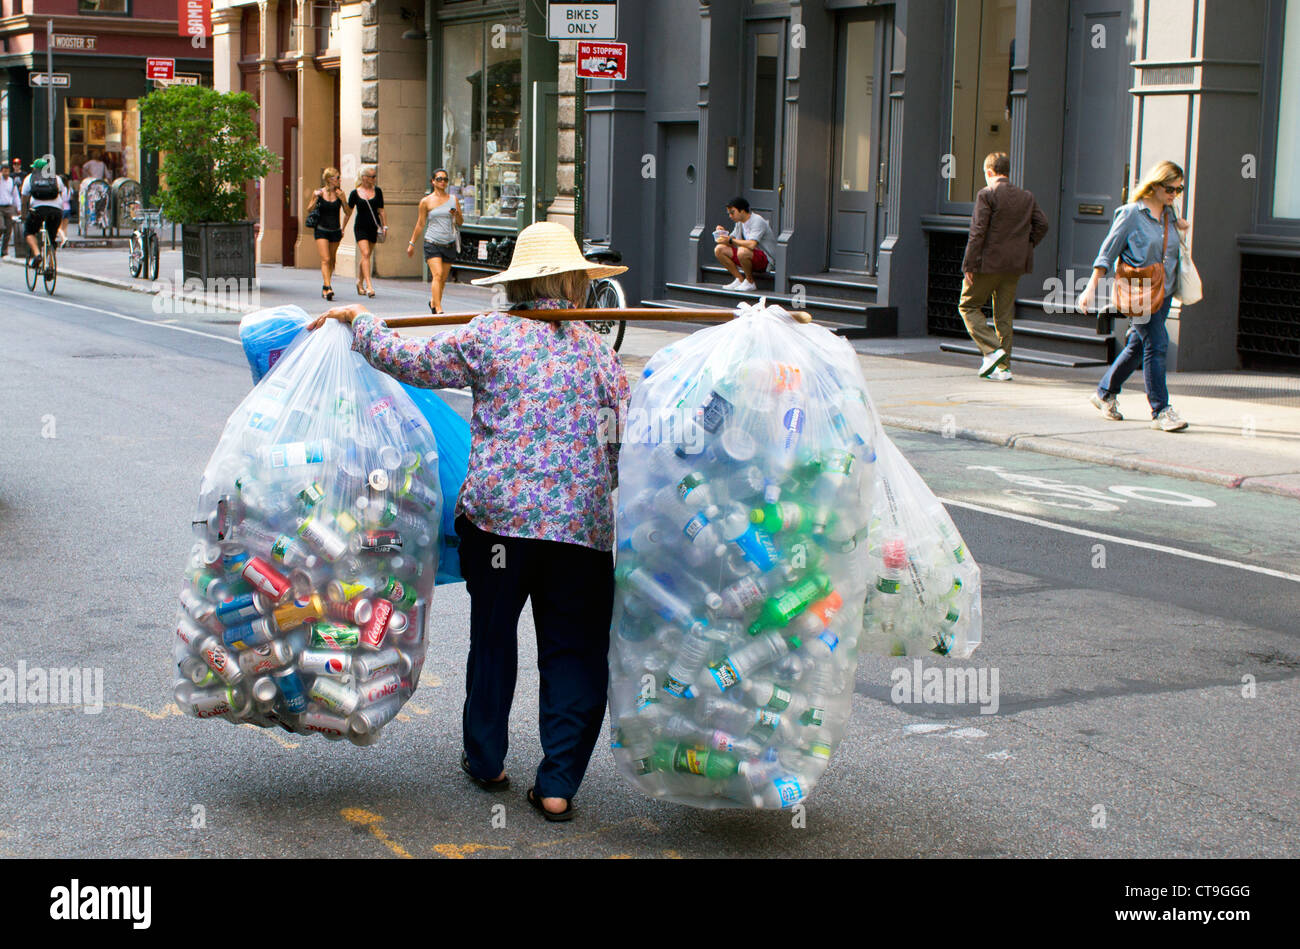 elderly-asian-woman-collecting-cans-and-